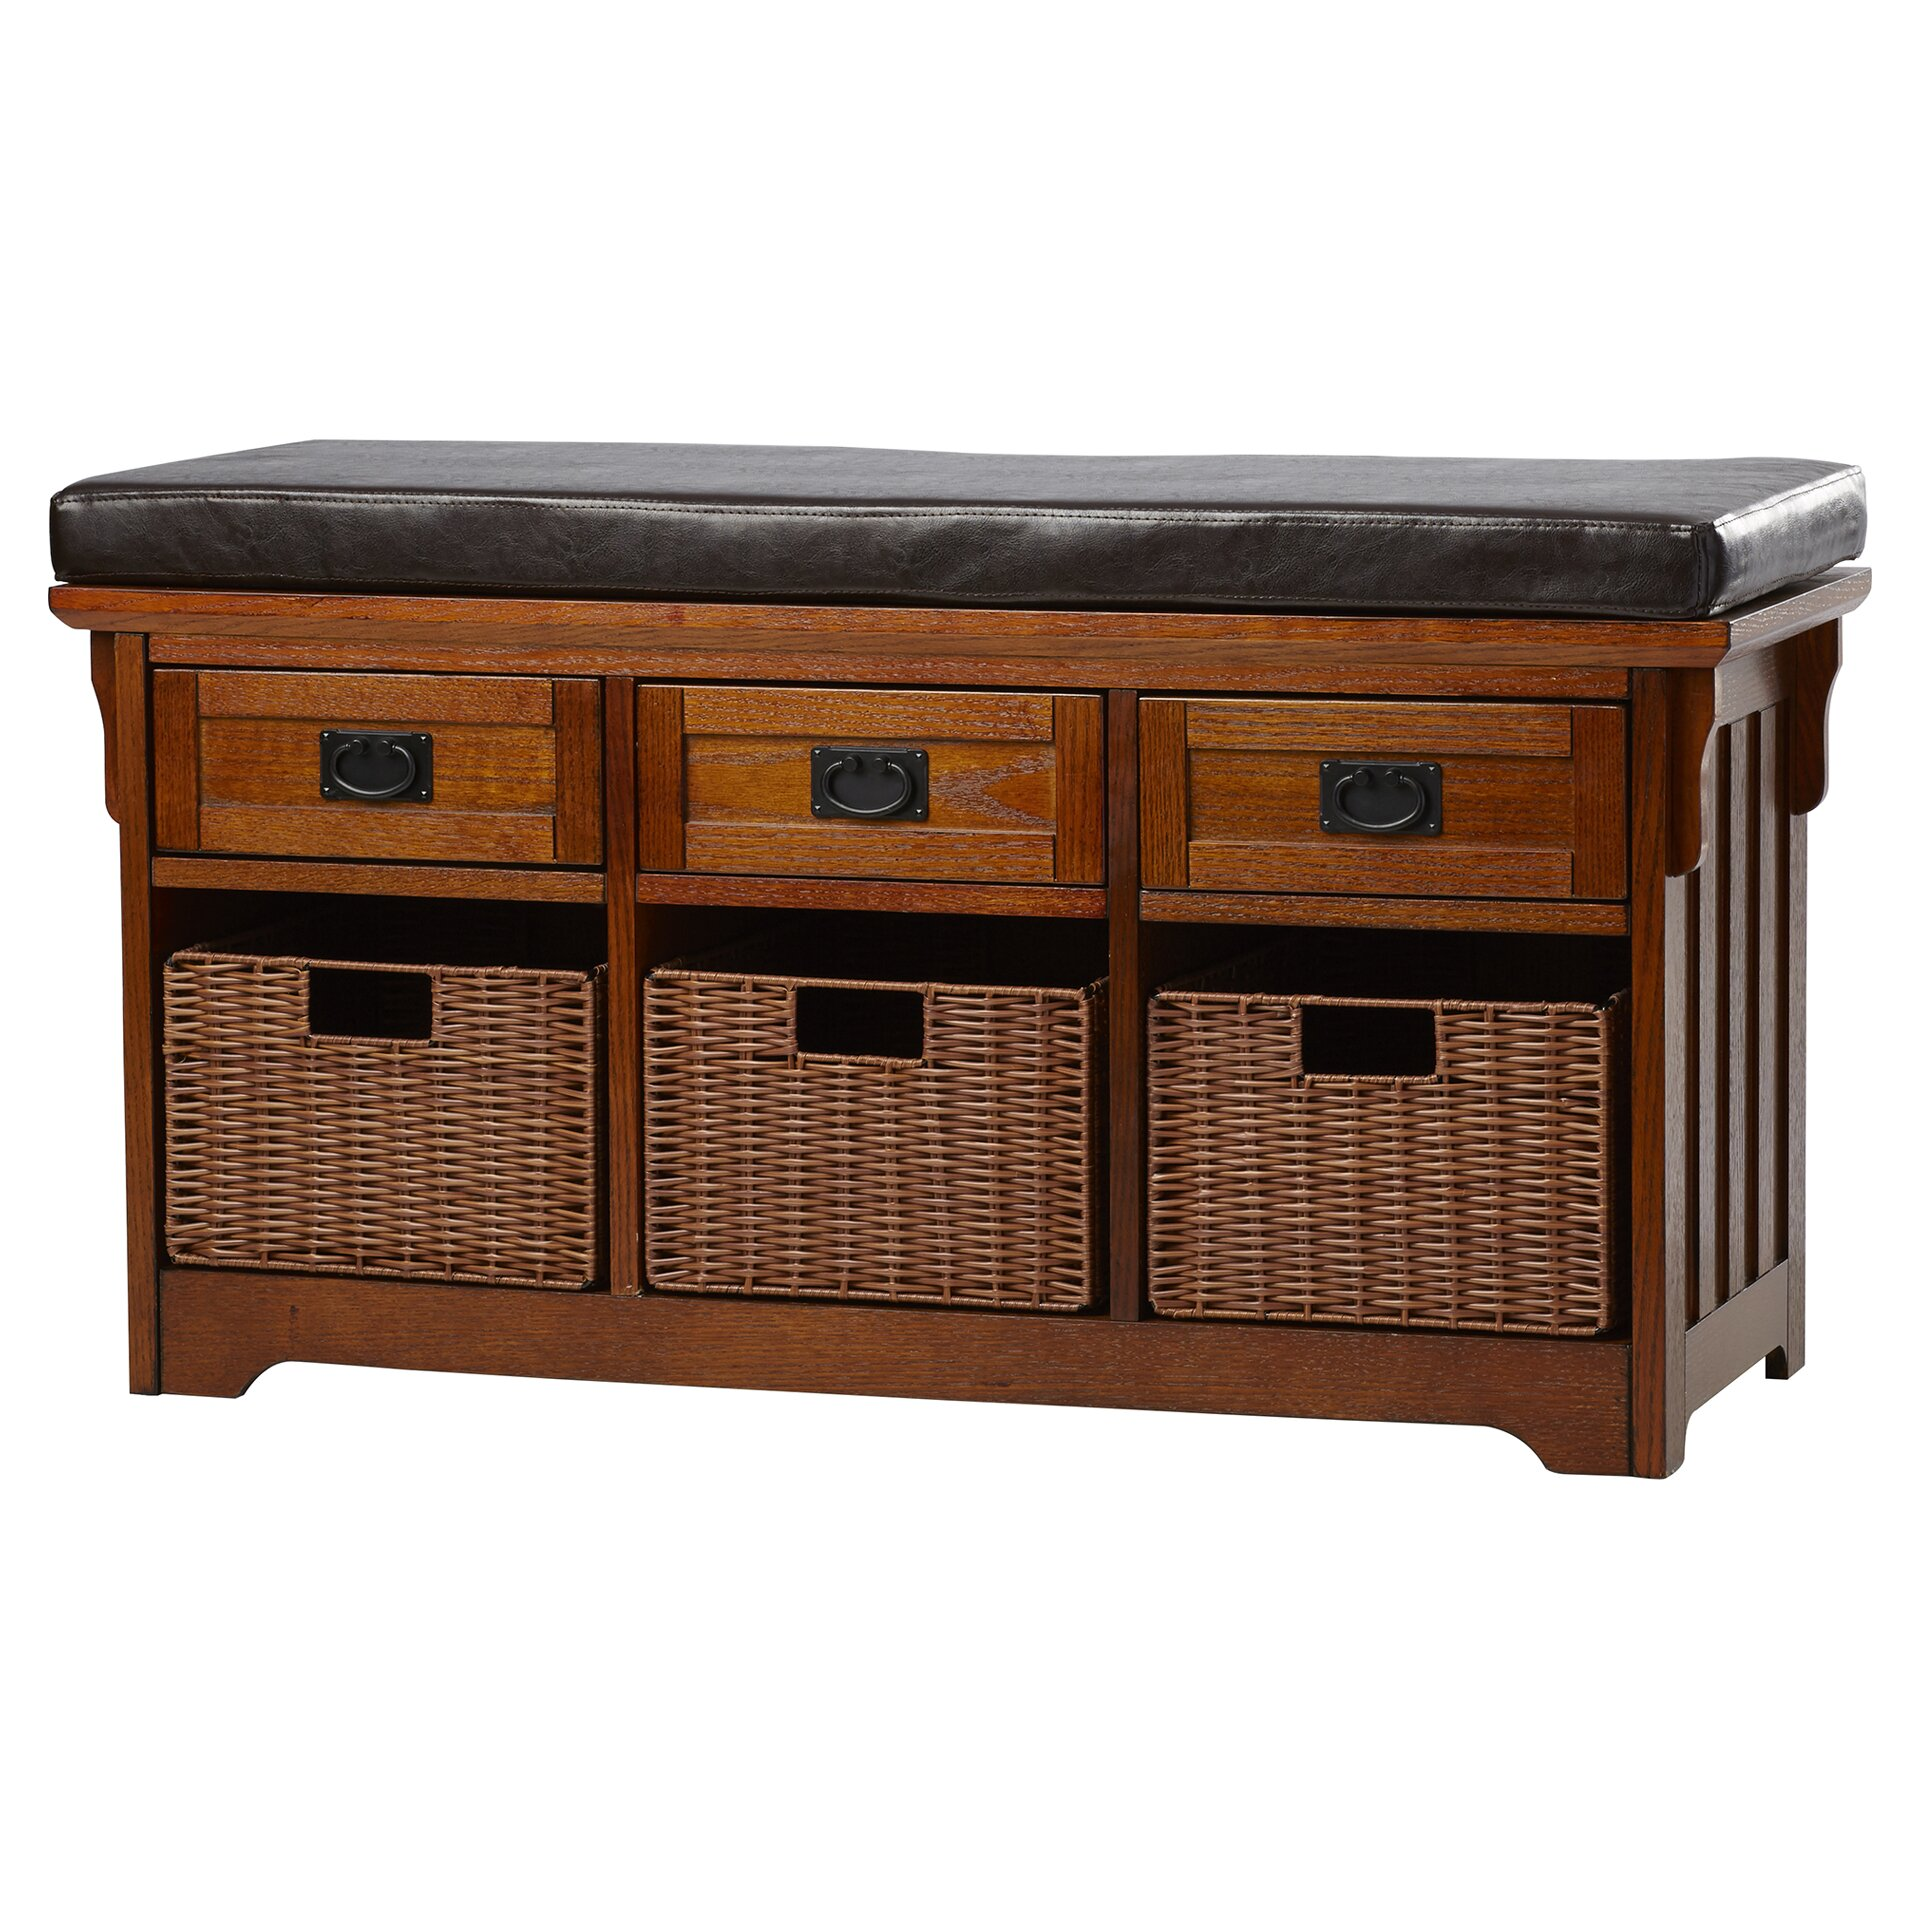 Foyer Mudroom Review : Loon peak hemlock wooden entryway storage bench reviews